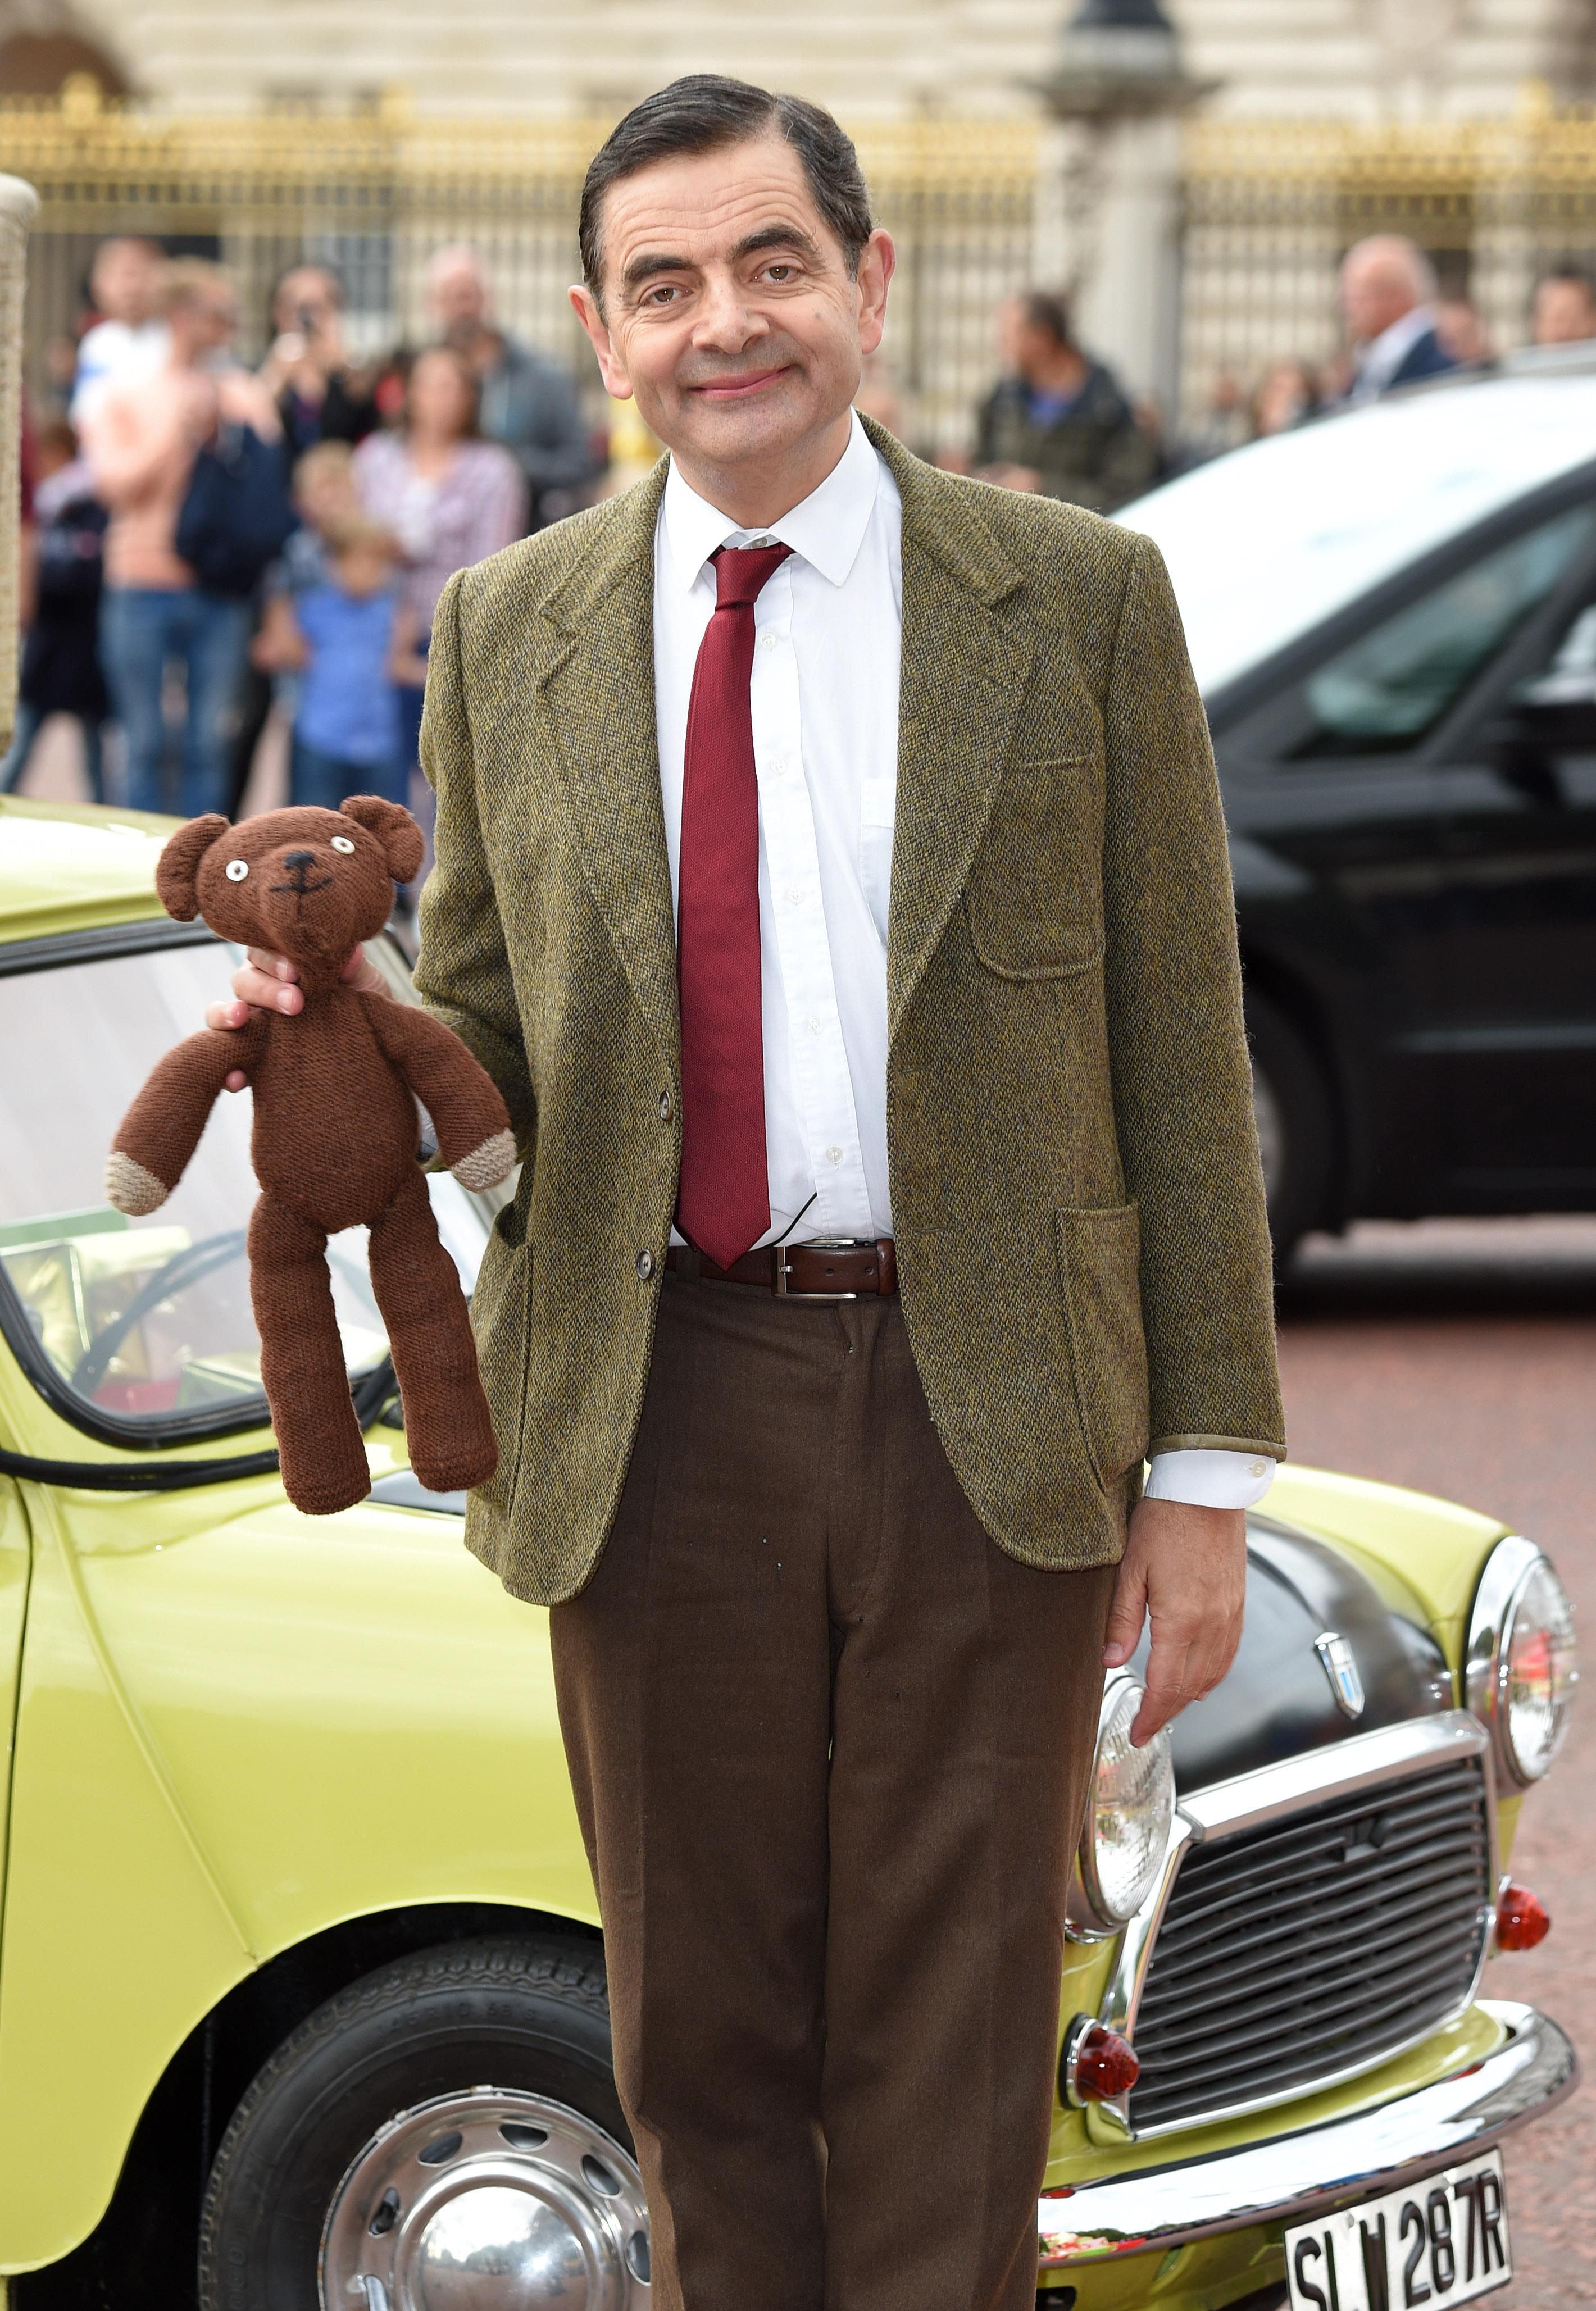 Mr Bean Bizarre Mr Bean Fan Theory Explains Why He Is So Odd And It